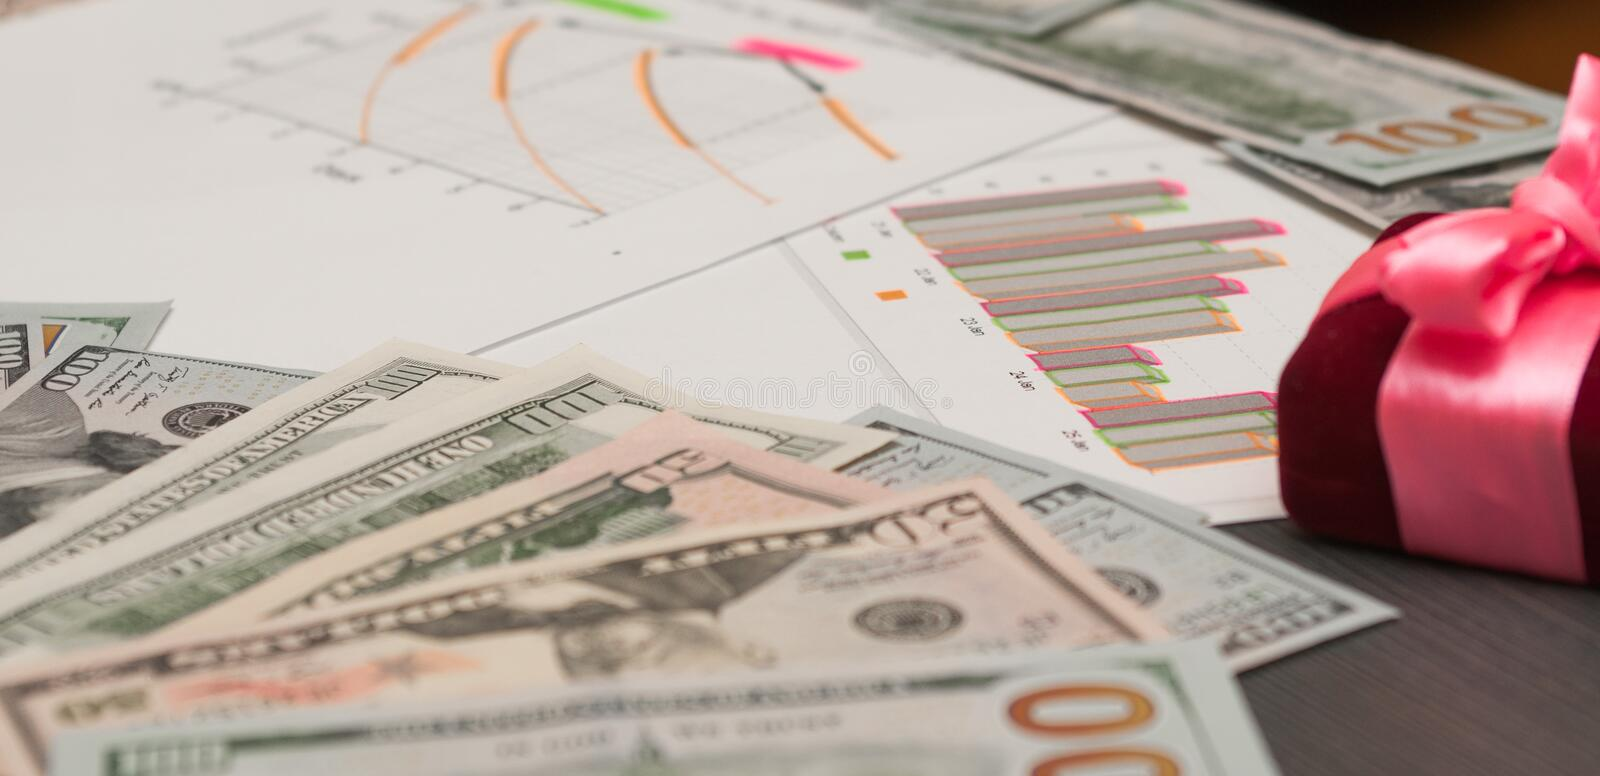 Politics and financial opportunities, a holiday gift royalty free stock photo